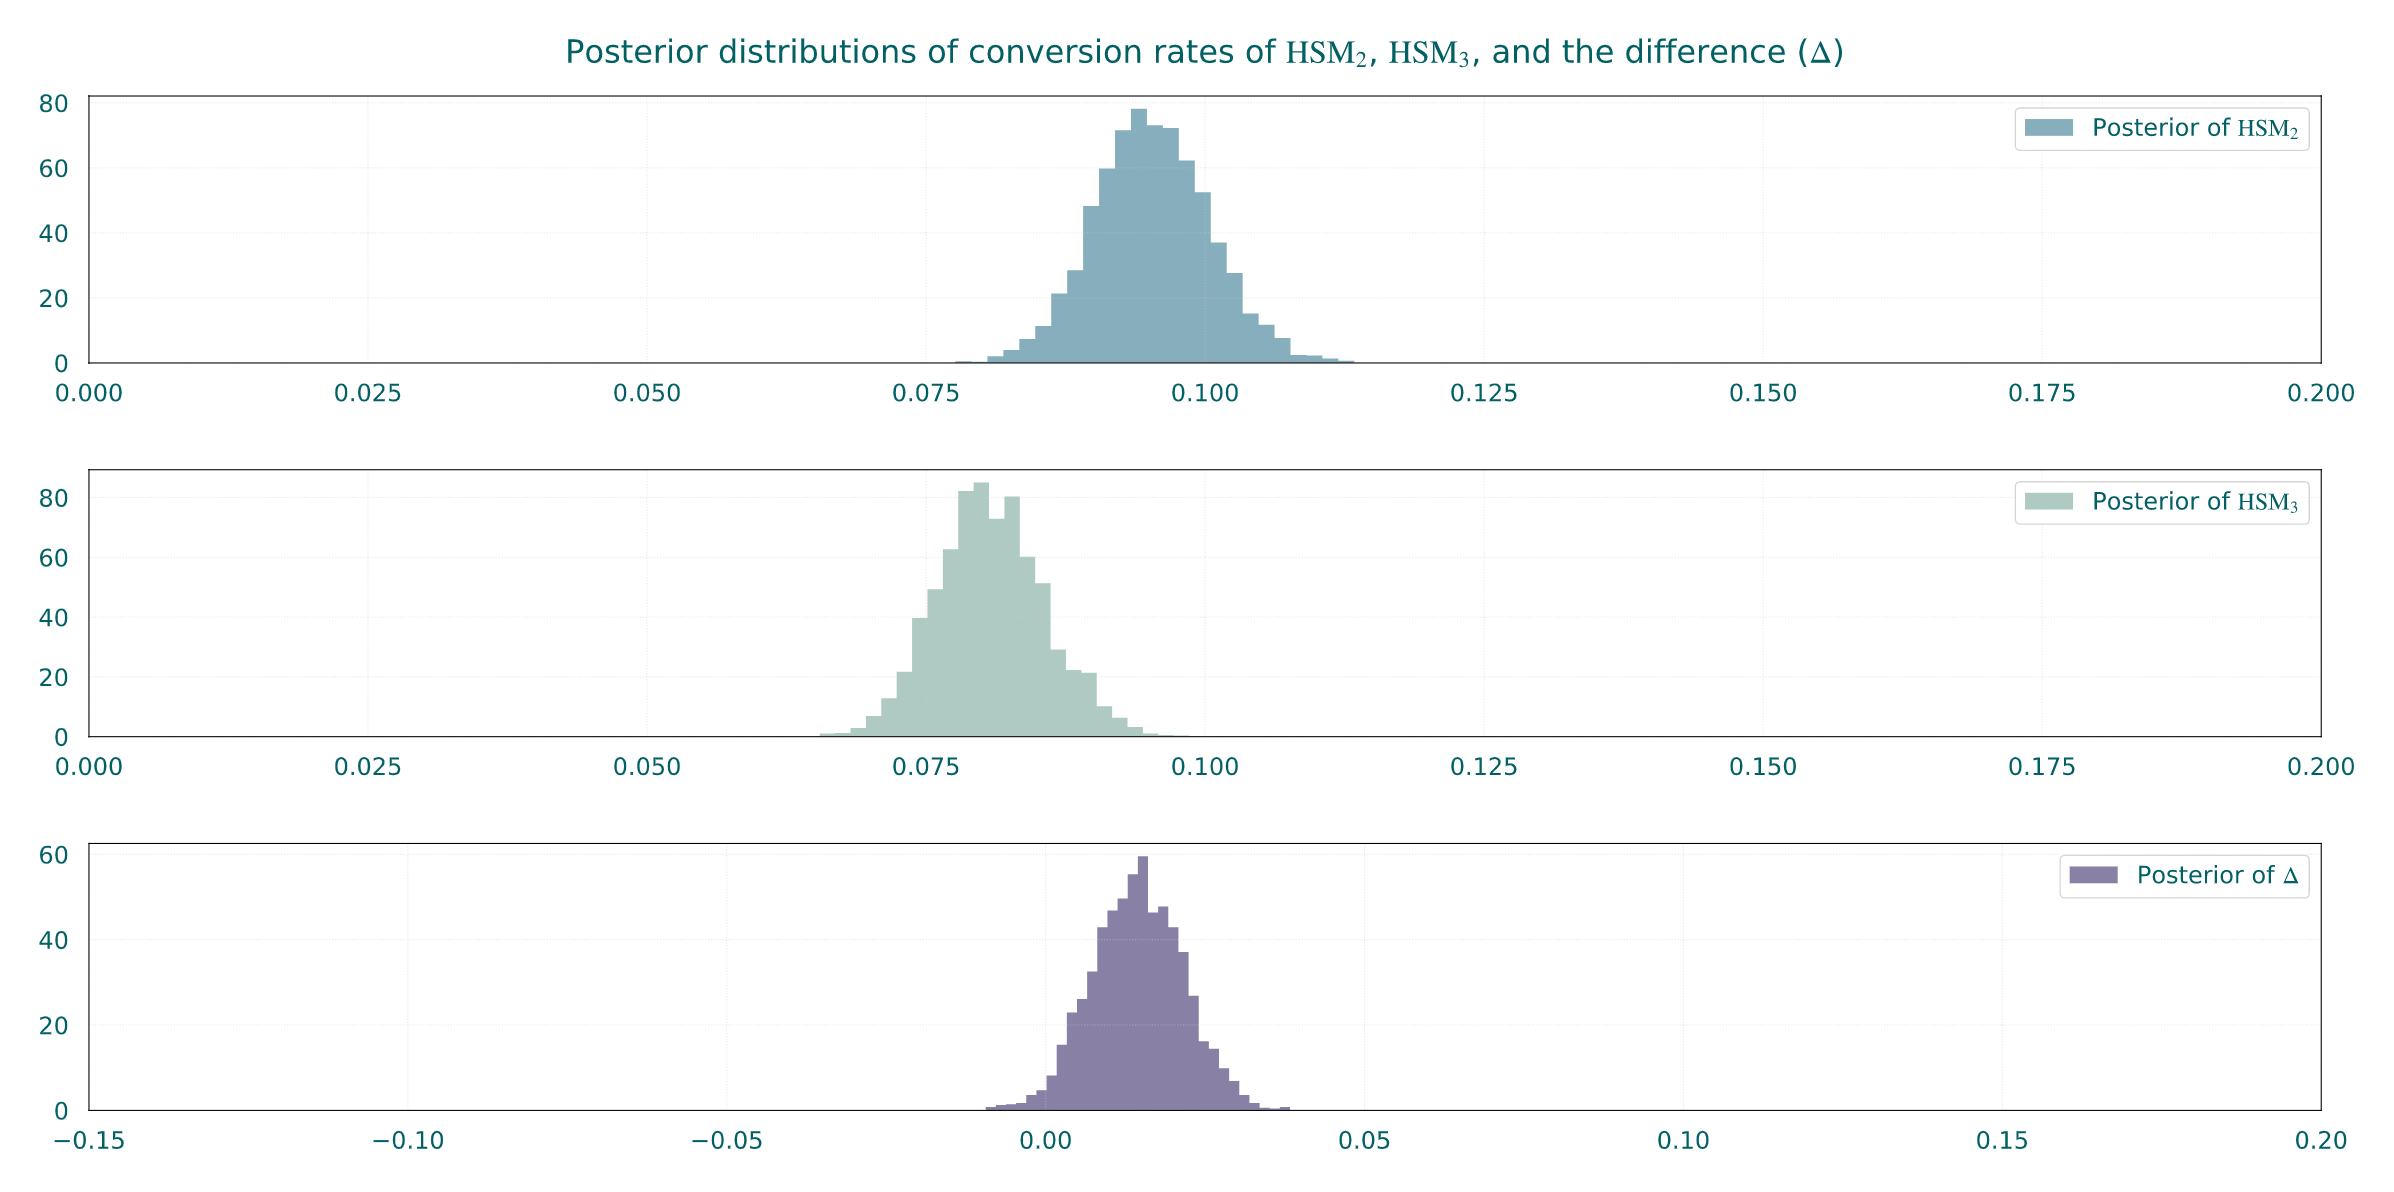 Posterior distributions of the conversion rates